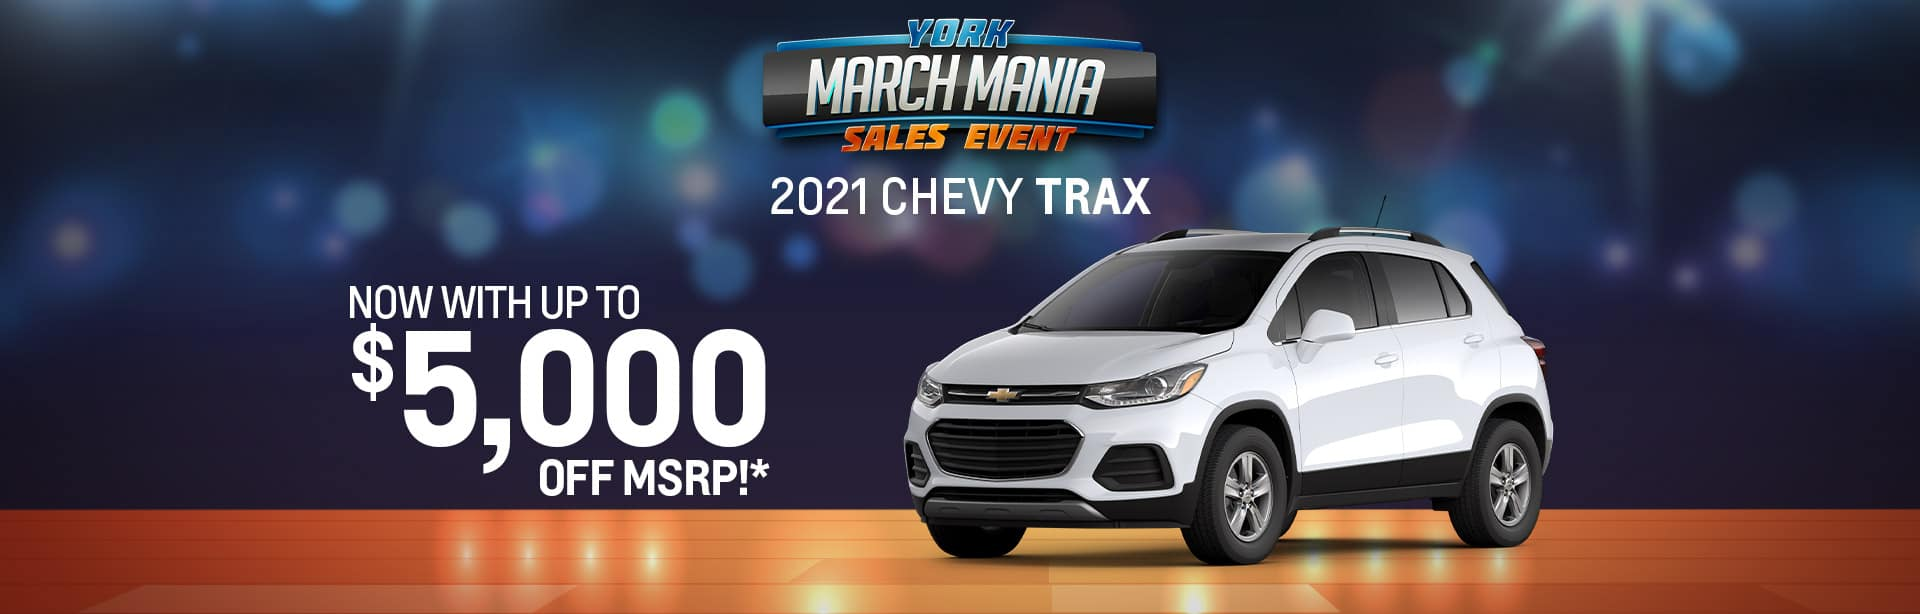 Best rebate offer on a new 2021 Chevy Trax near Brazil IN